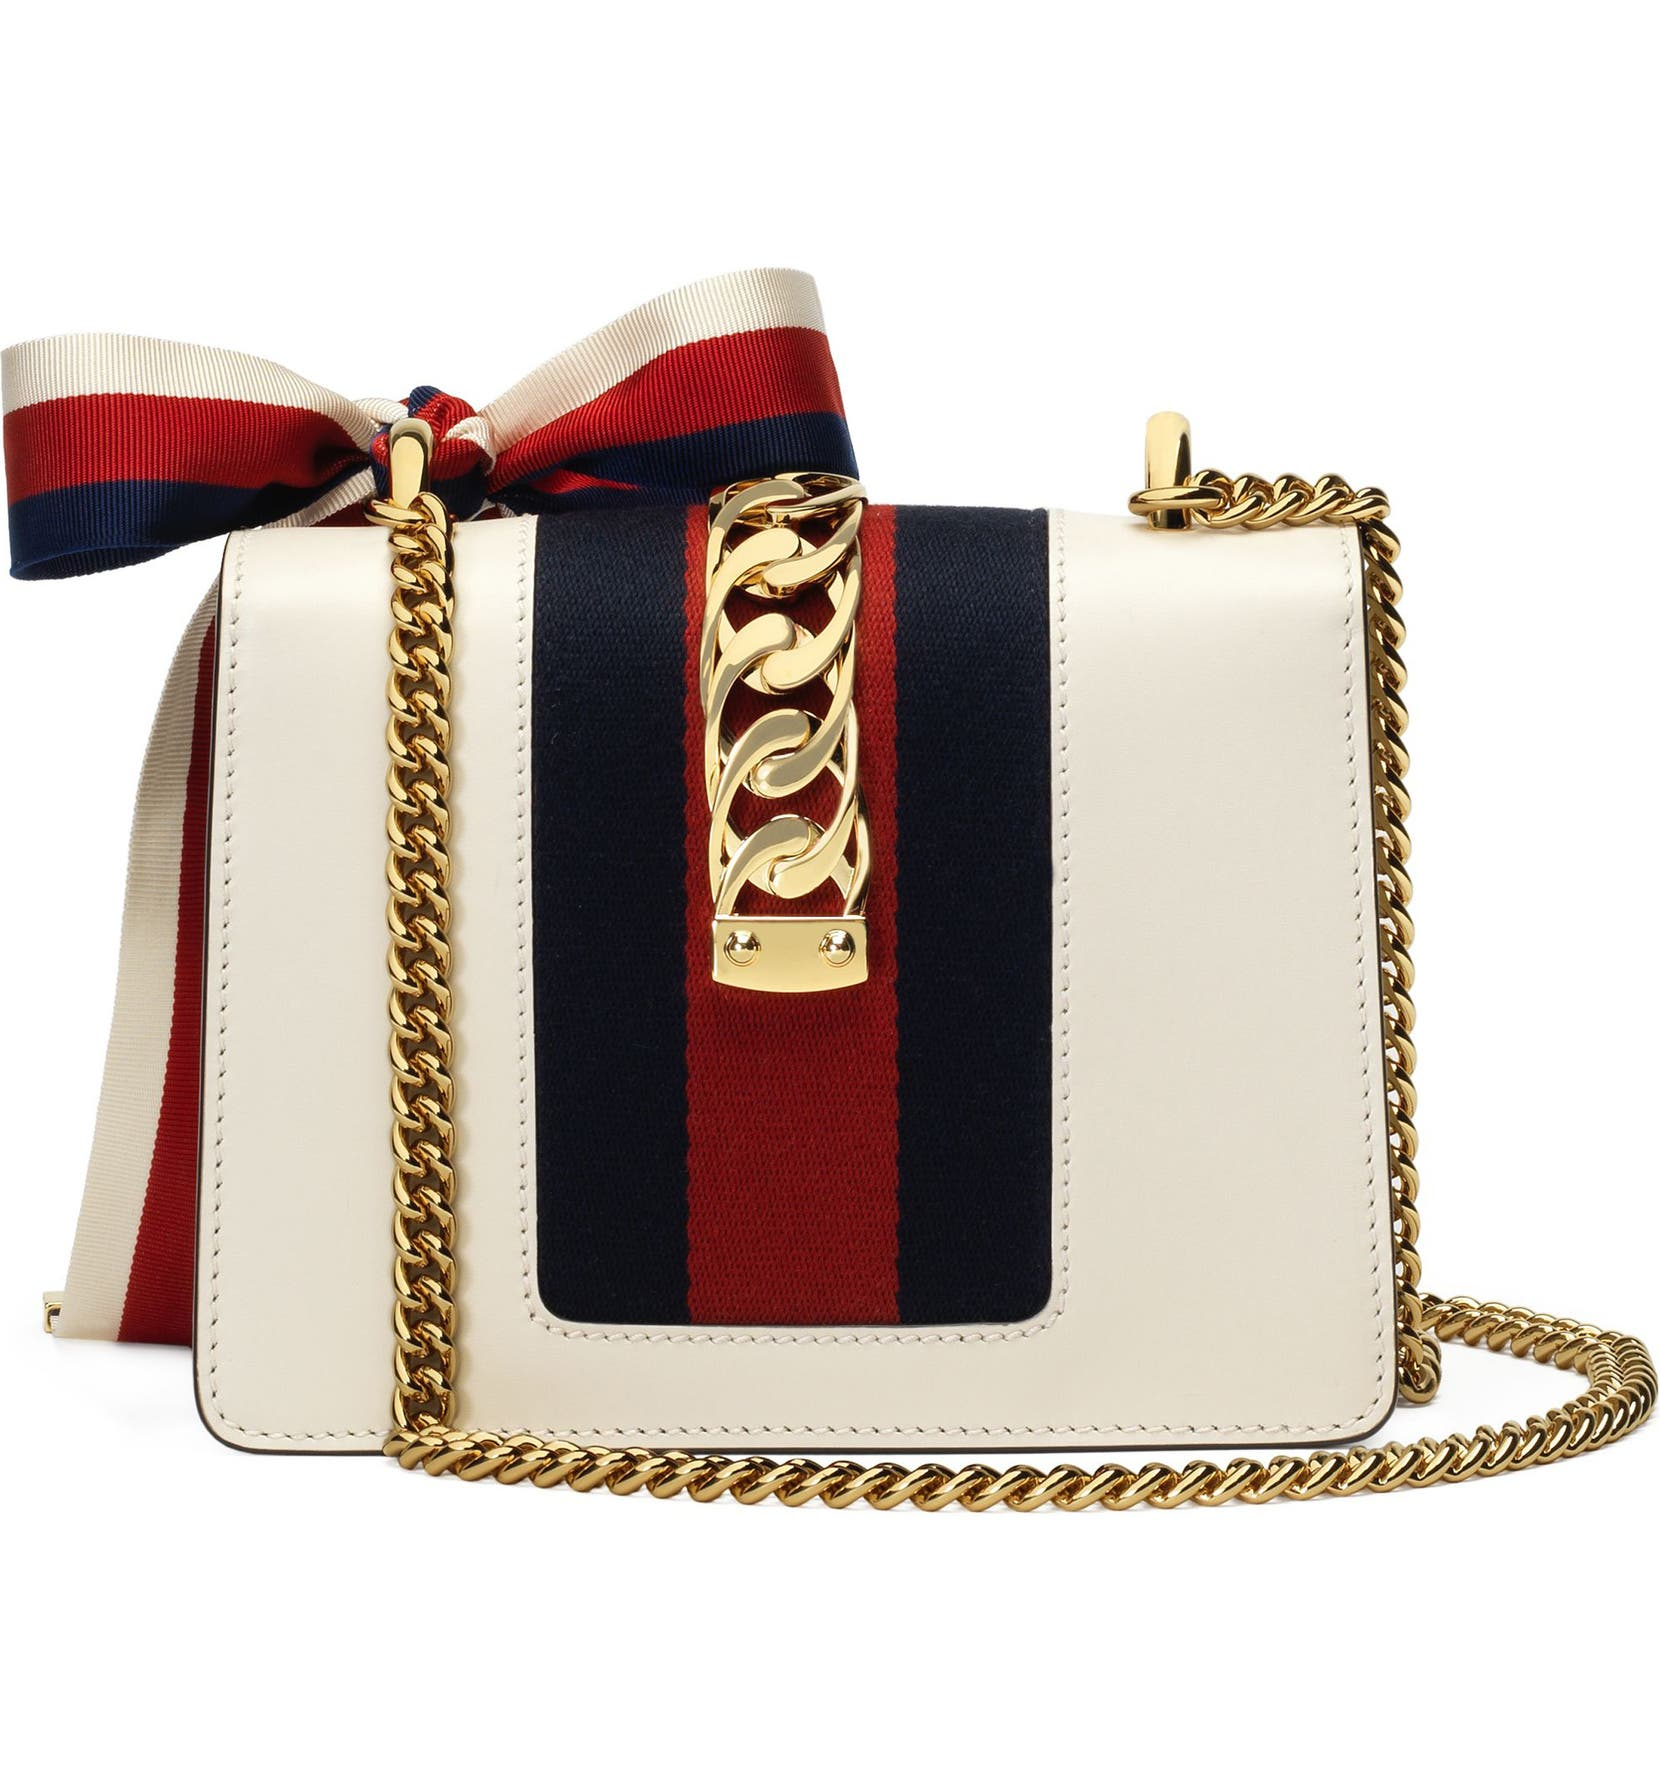 b99970a67bf7 Gucci Mini Sylvie Leather Shoulder Bag | Nordstrom